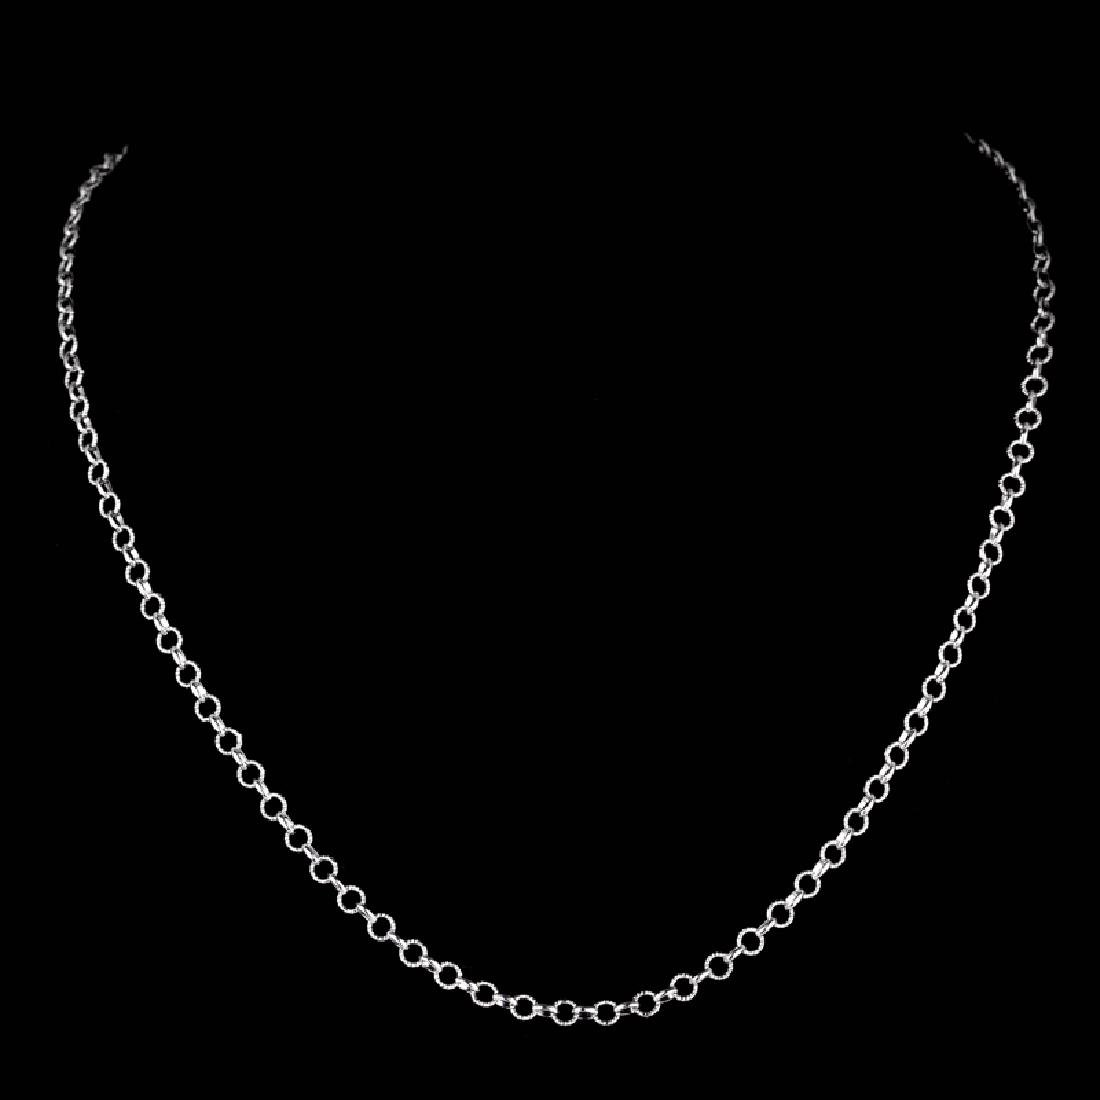 *Fine Jewelry 14 KT White Gold, 5.0GR, 18'' Twisted